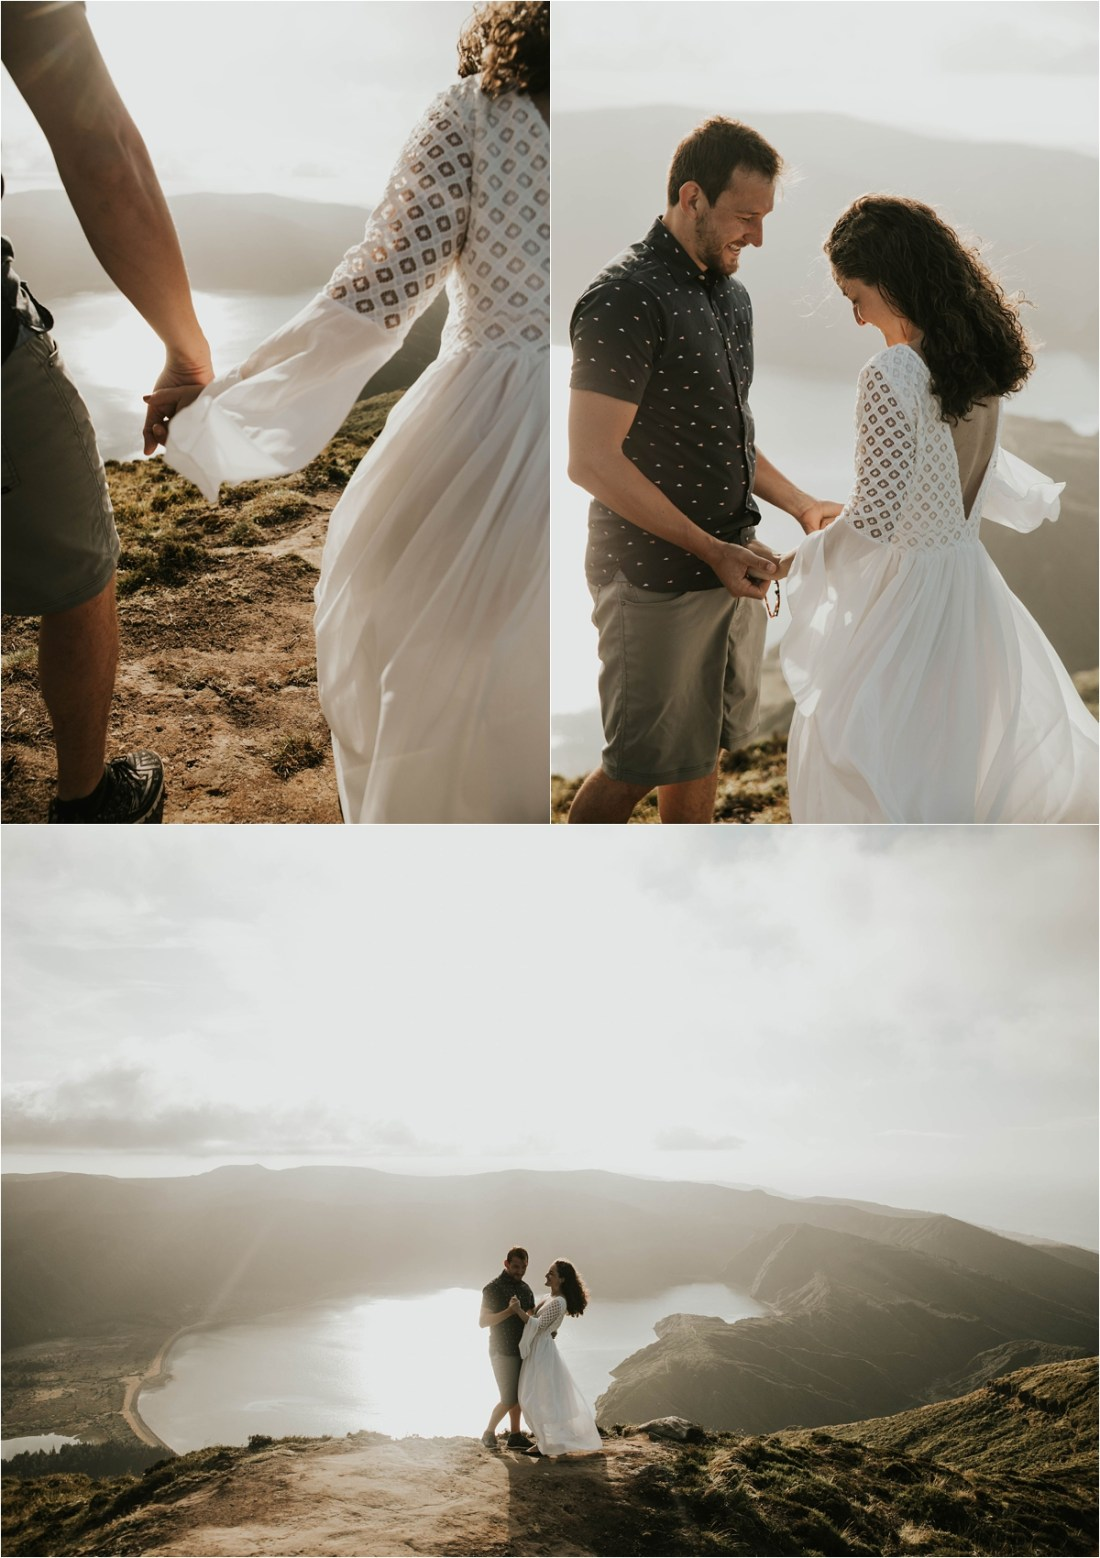 Wedding anniversary photo shoot in the Azores by Loco Love Photography